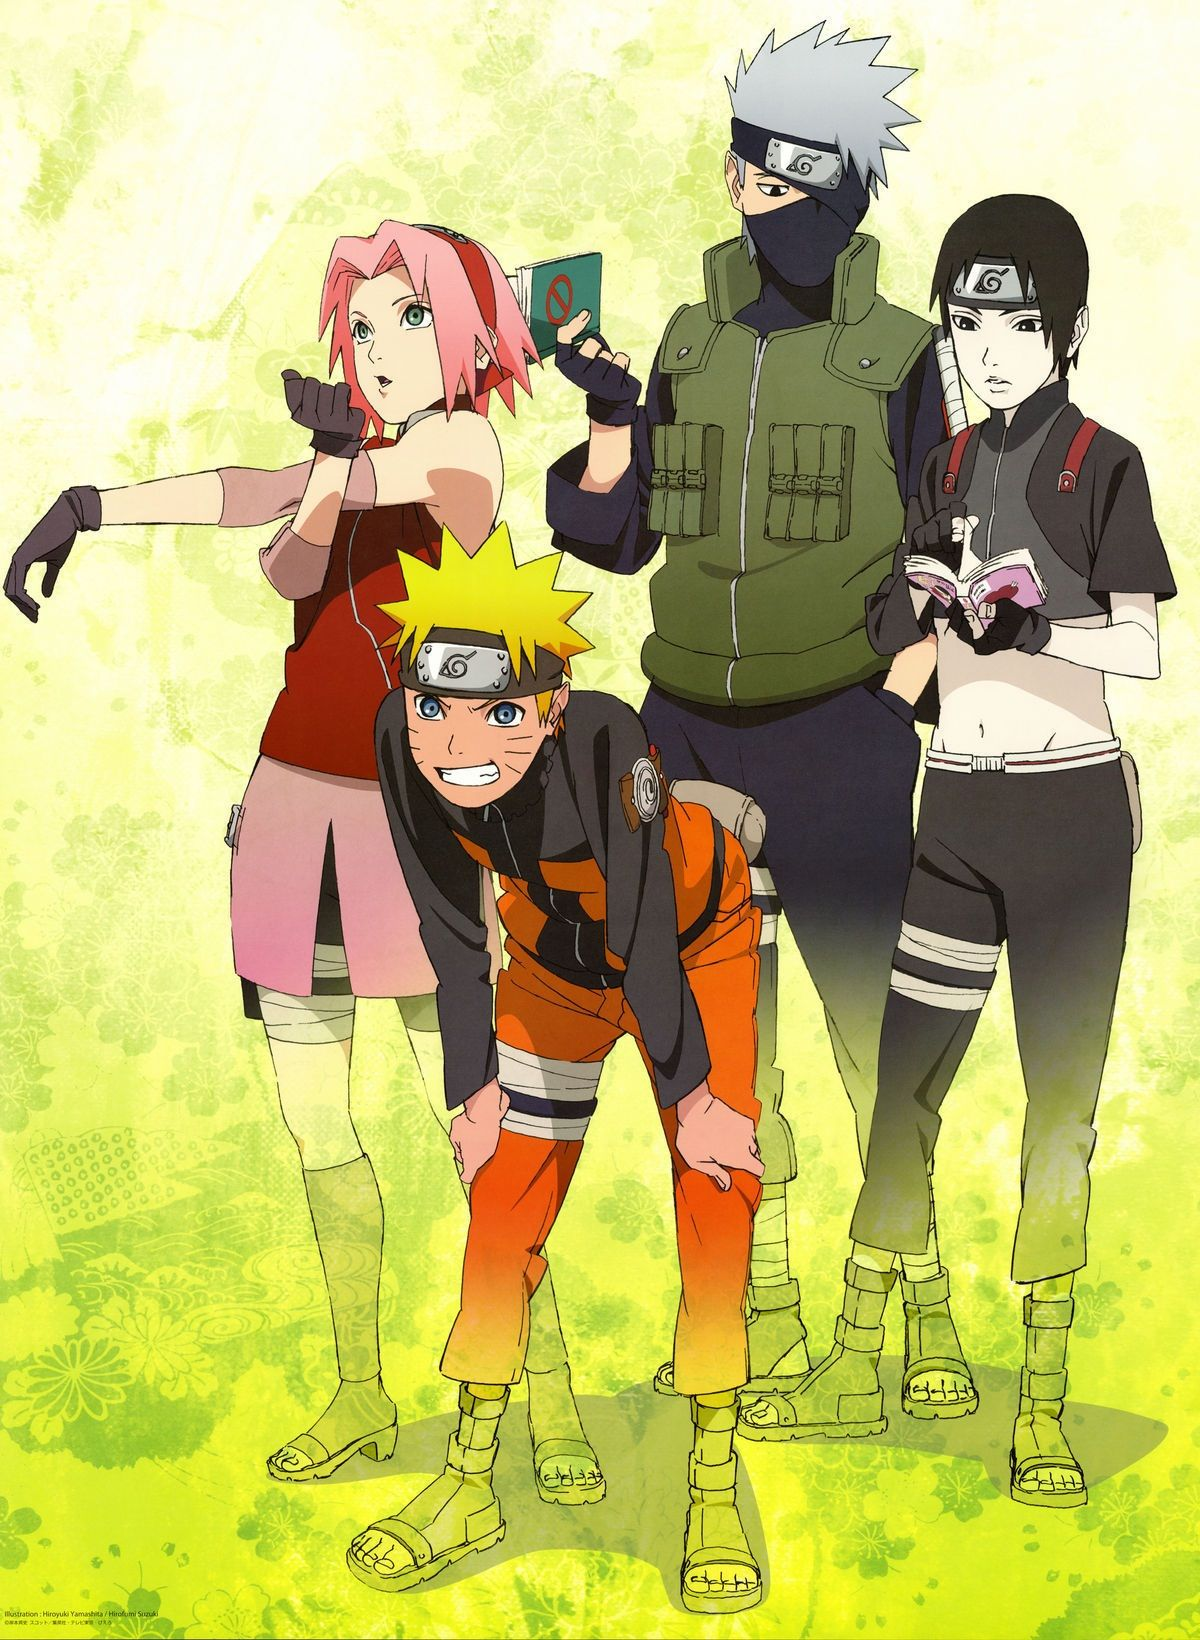 Pinterest (With images) Anime naruto, Anime, Naruto kakashi